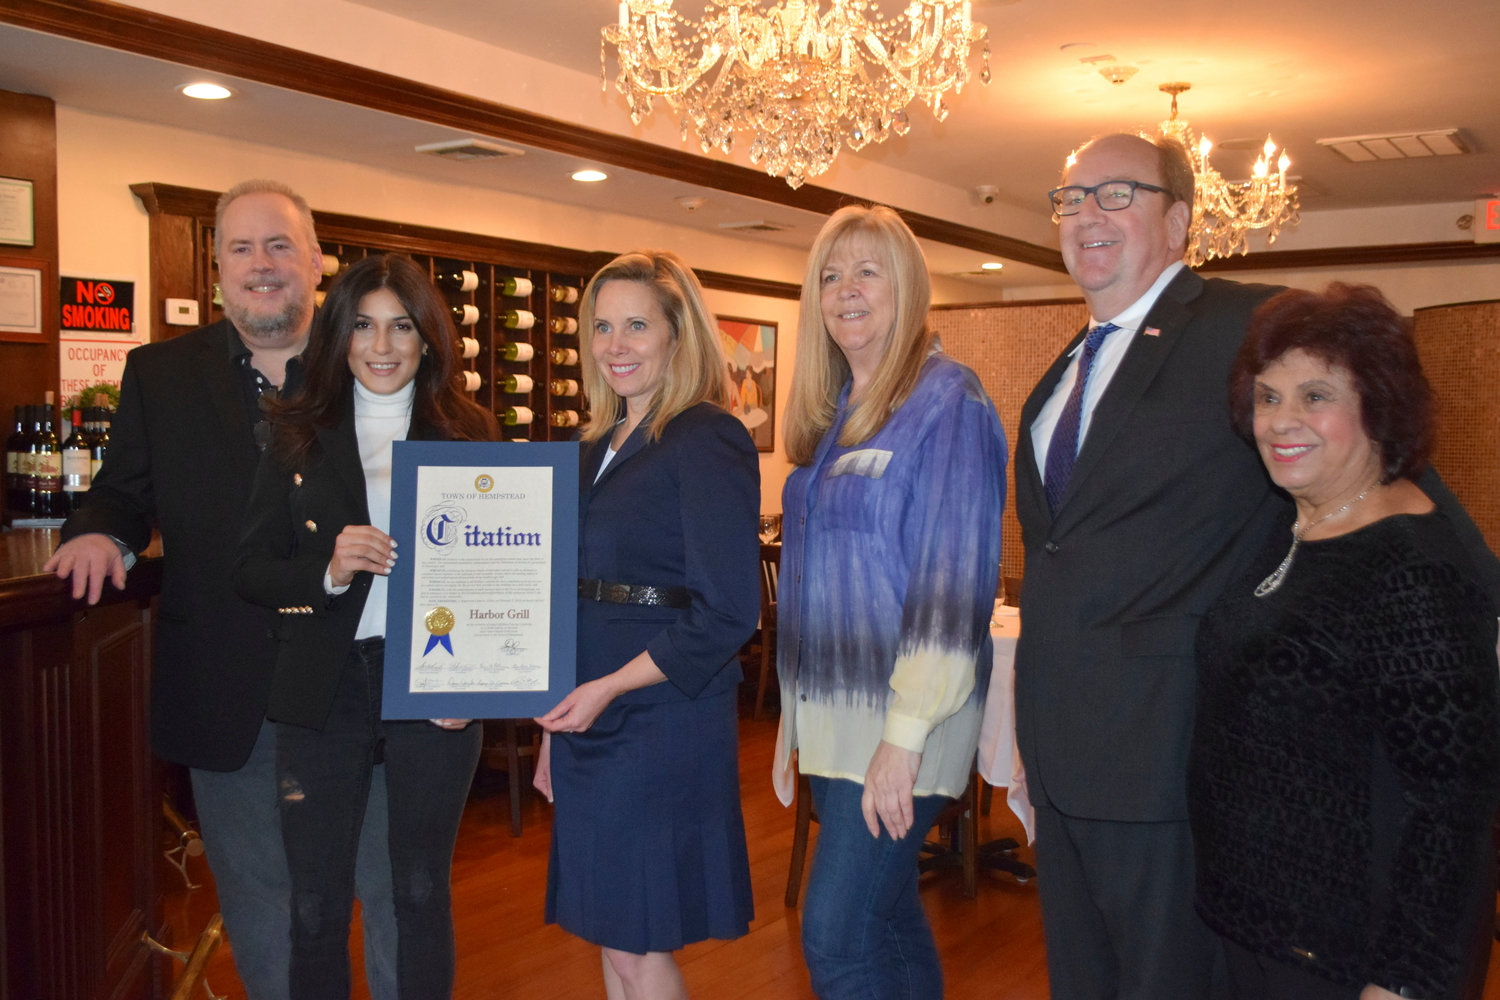 A grand opening ribbon-cutting for Harbor Grill was held on Feb. 7. From left HWBA First Vice President John Roblin, owner Gabriela Rozengauz, Town of Hempstead Supervisor Laura Gillen, HWBA Secretary Loretta Camarda,  HWBA President David Friedman and active Woodmere resident Ann DeMichael.